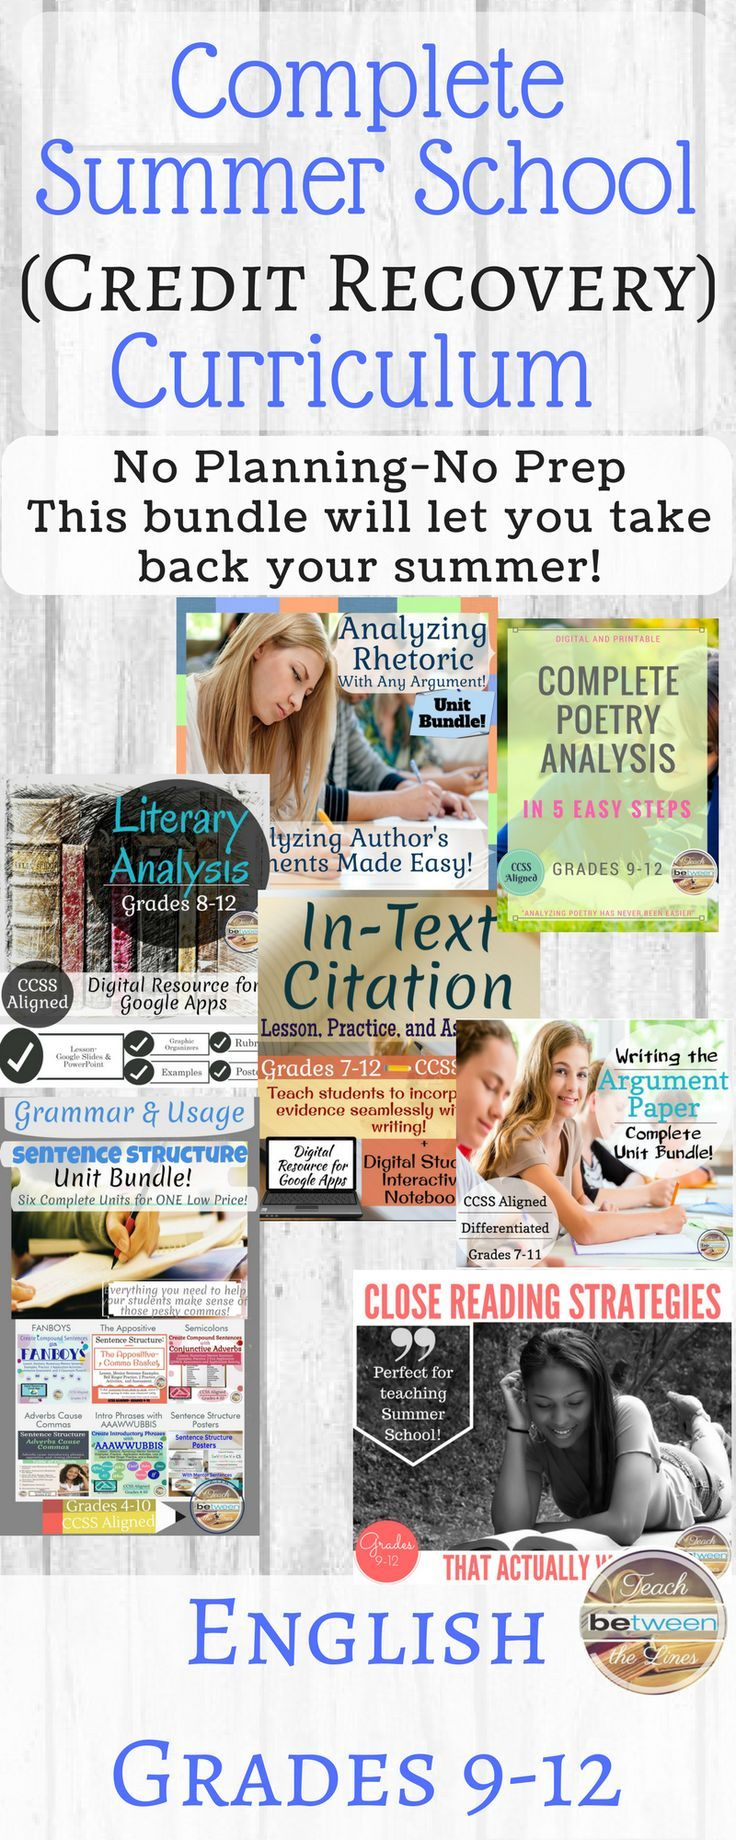 using authentic materials to teach language english language essay How should we use examples of written language from the outside world in the language teaching classroom  teach authentic materials  authentic english.